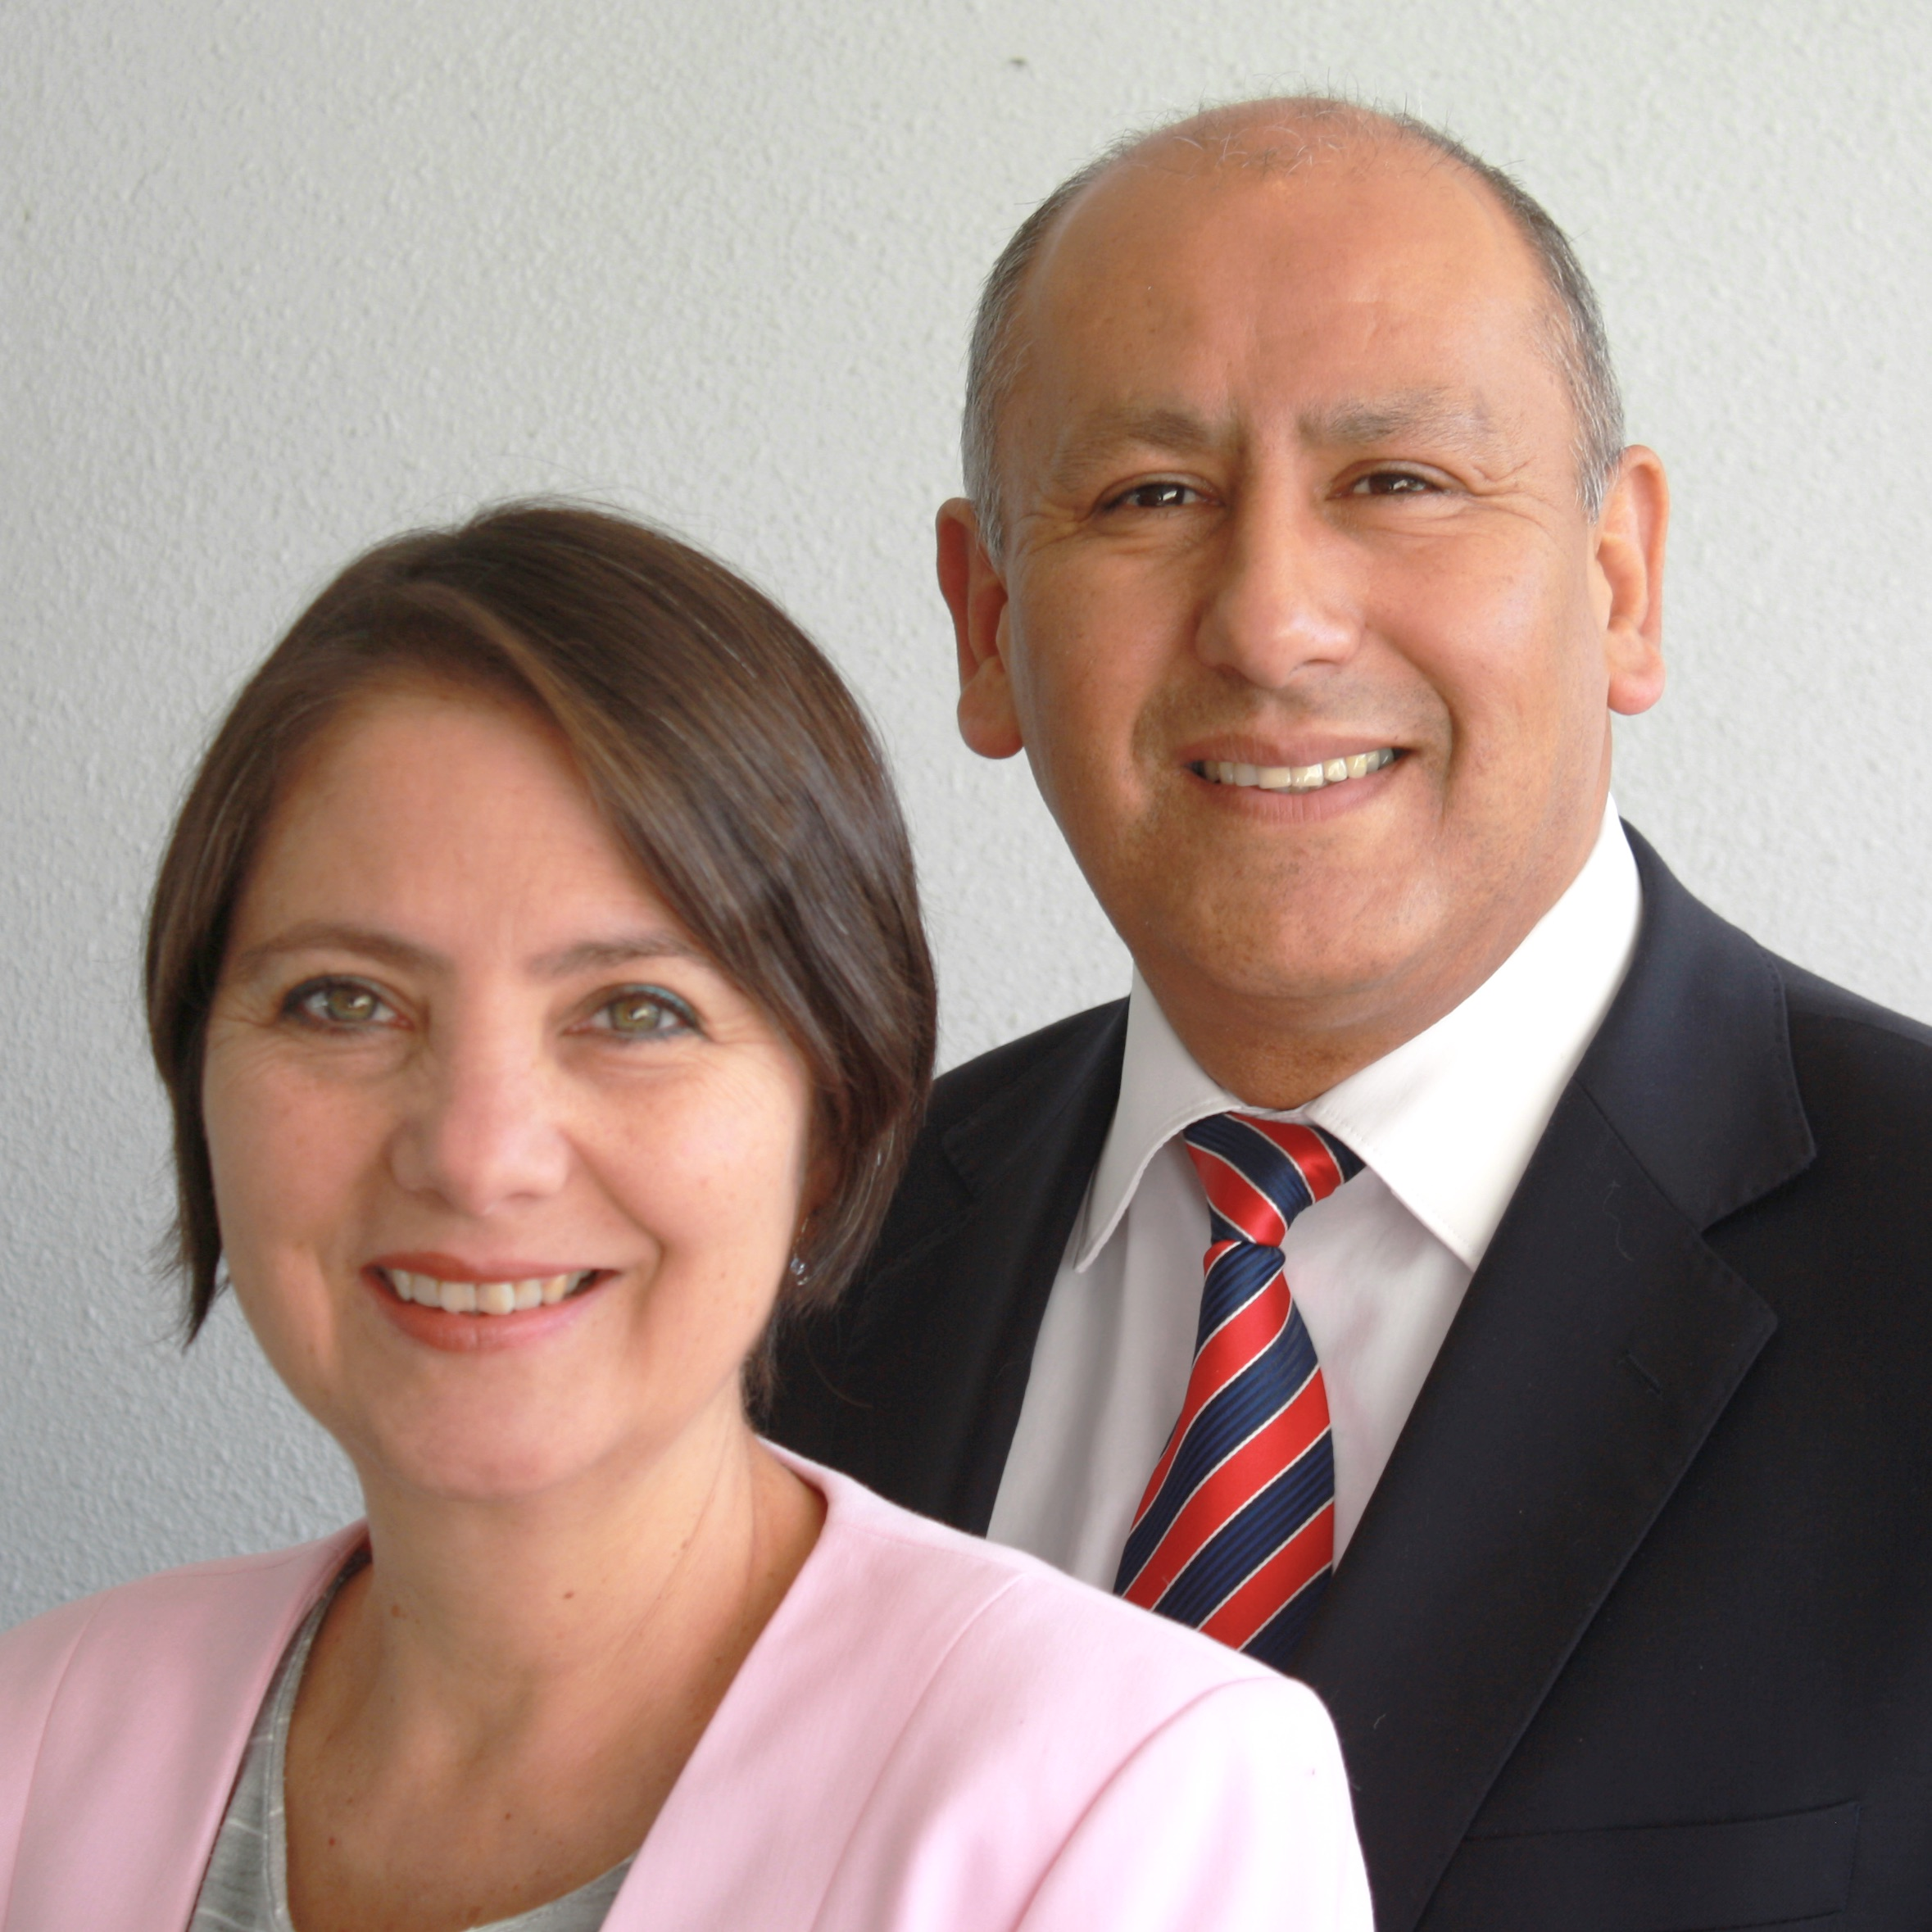 Marcela I. Aguilar and Francisco A. Escobar Riquelme